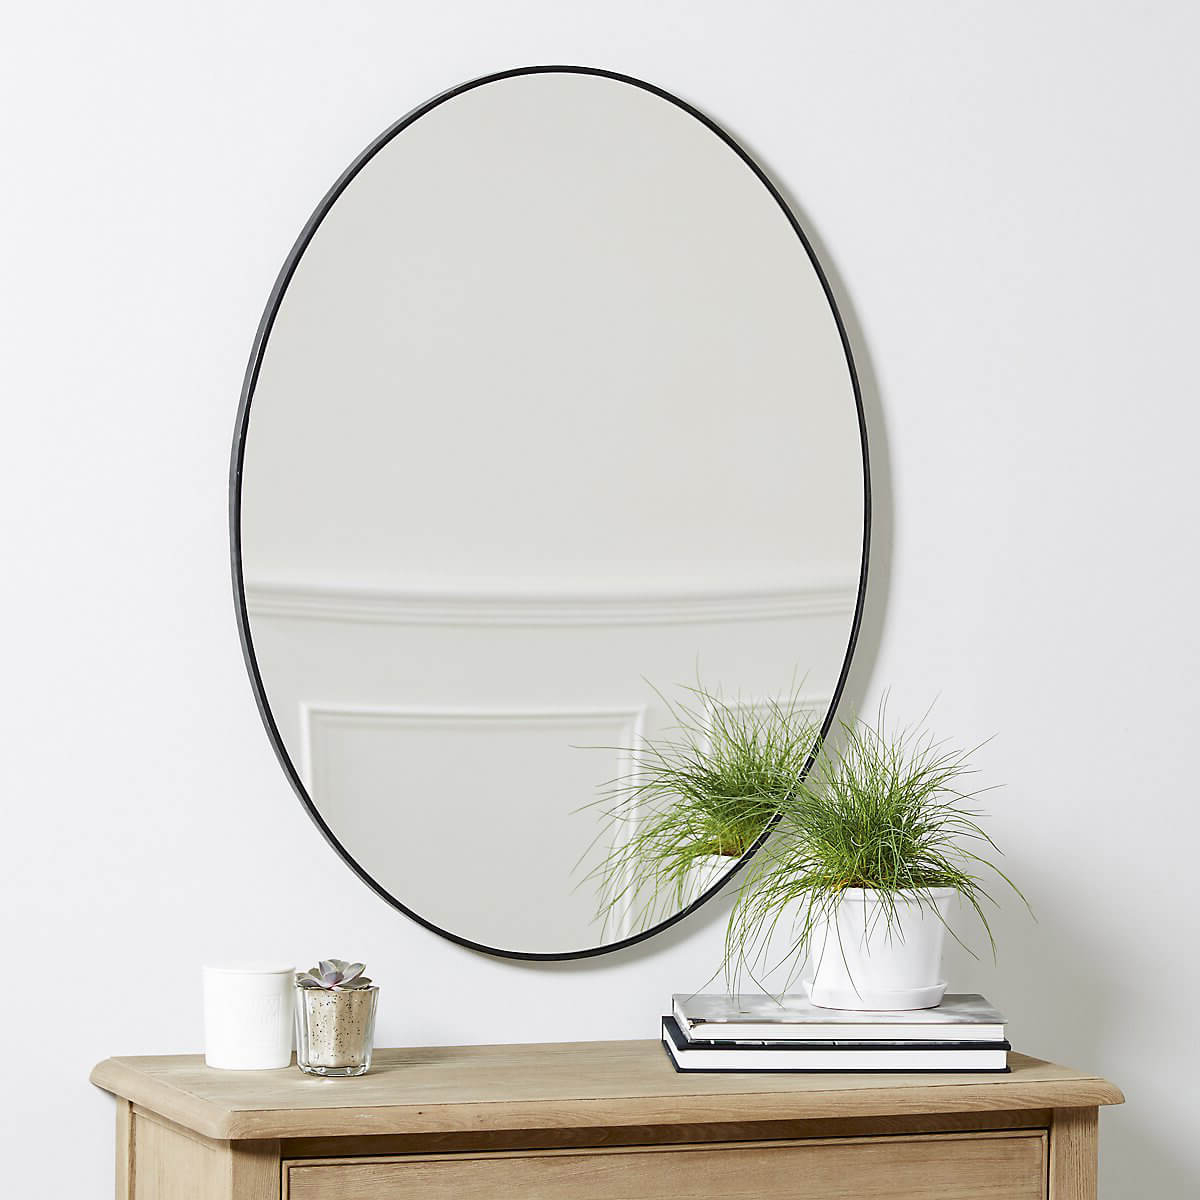 Our Top Mirror Picks To Open Up Hallways – Neville Johnson Within Latest Wall Mirrors For Hallway (View 15 of 20)